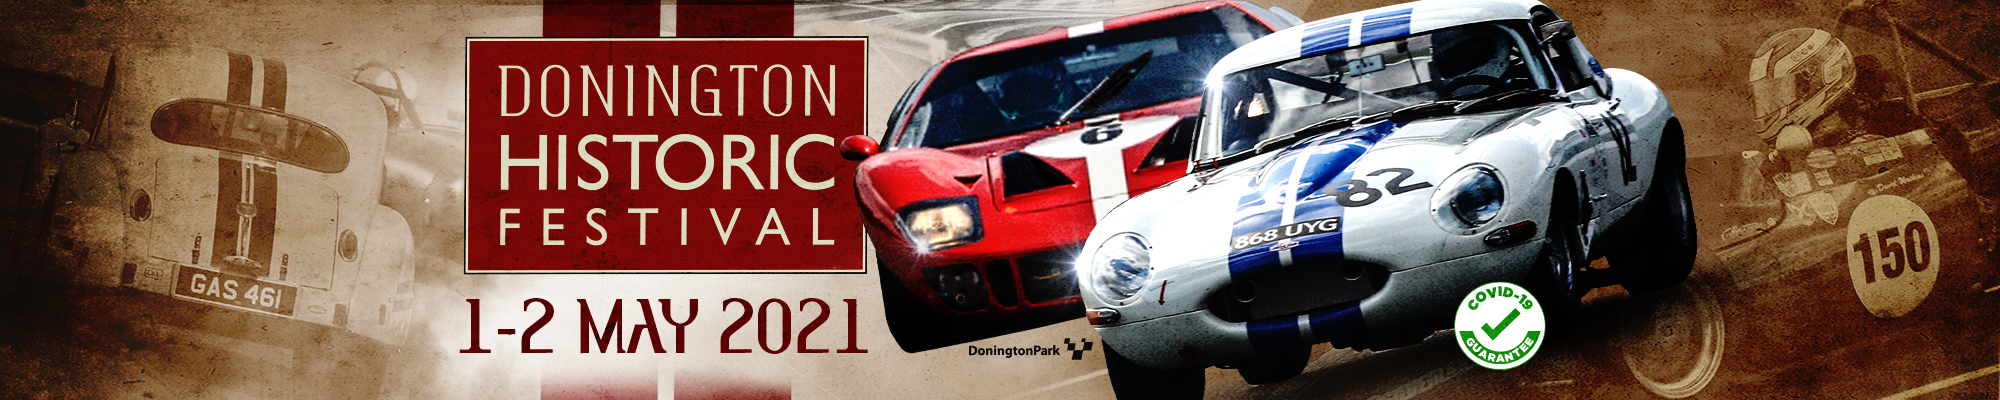 Donington Historic Festival- NO SPECTATORS